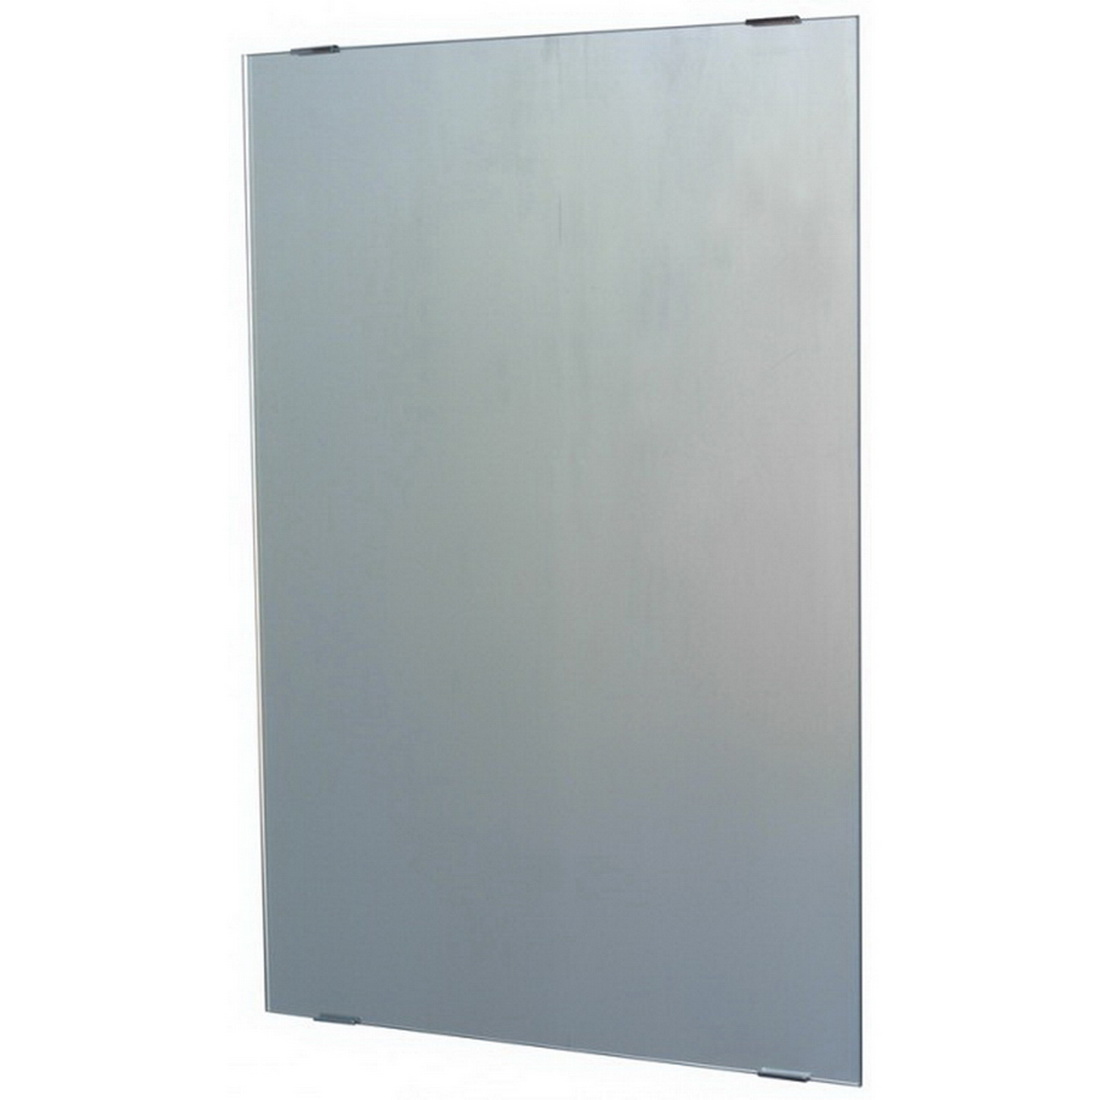 Mirrox Polished Edge Mirror with Clips 900 x 750mm 3630PEMCLIPS